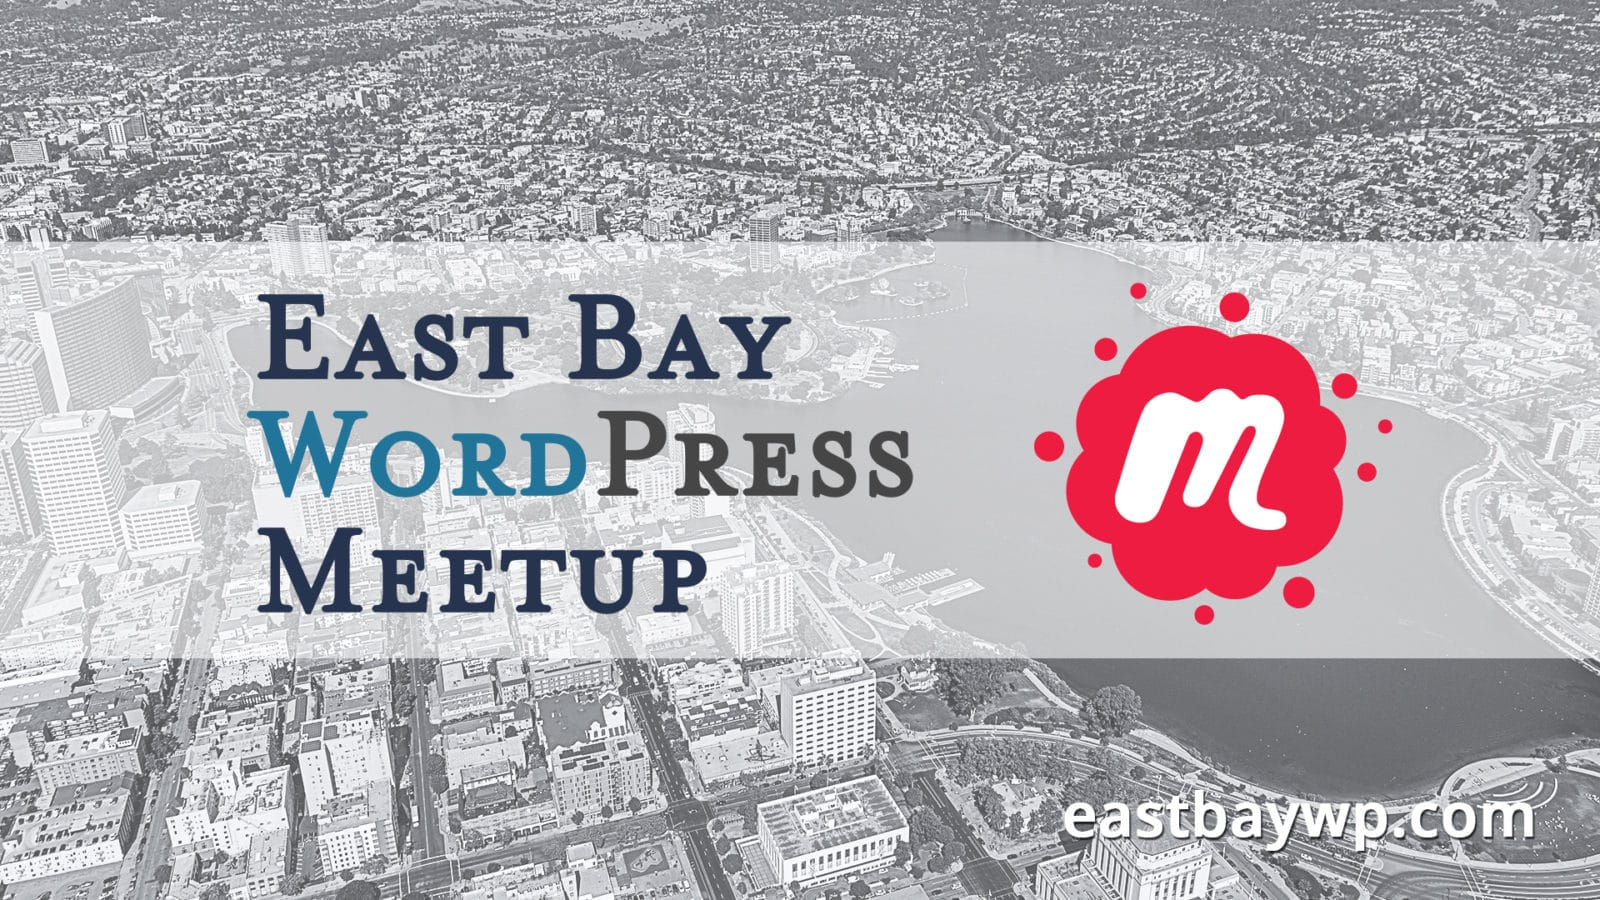 East Bay WordPress Meetup - Monthly gathering of WordPress junkies in the East San Francisco Bay